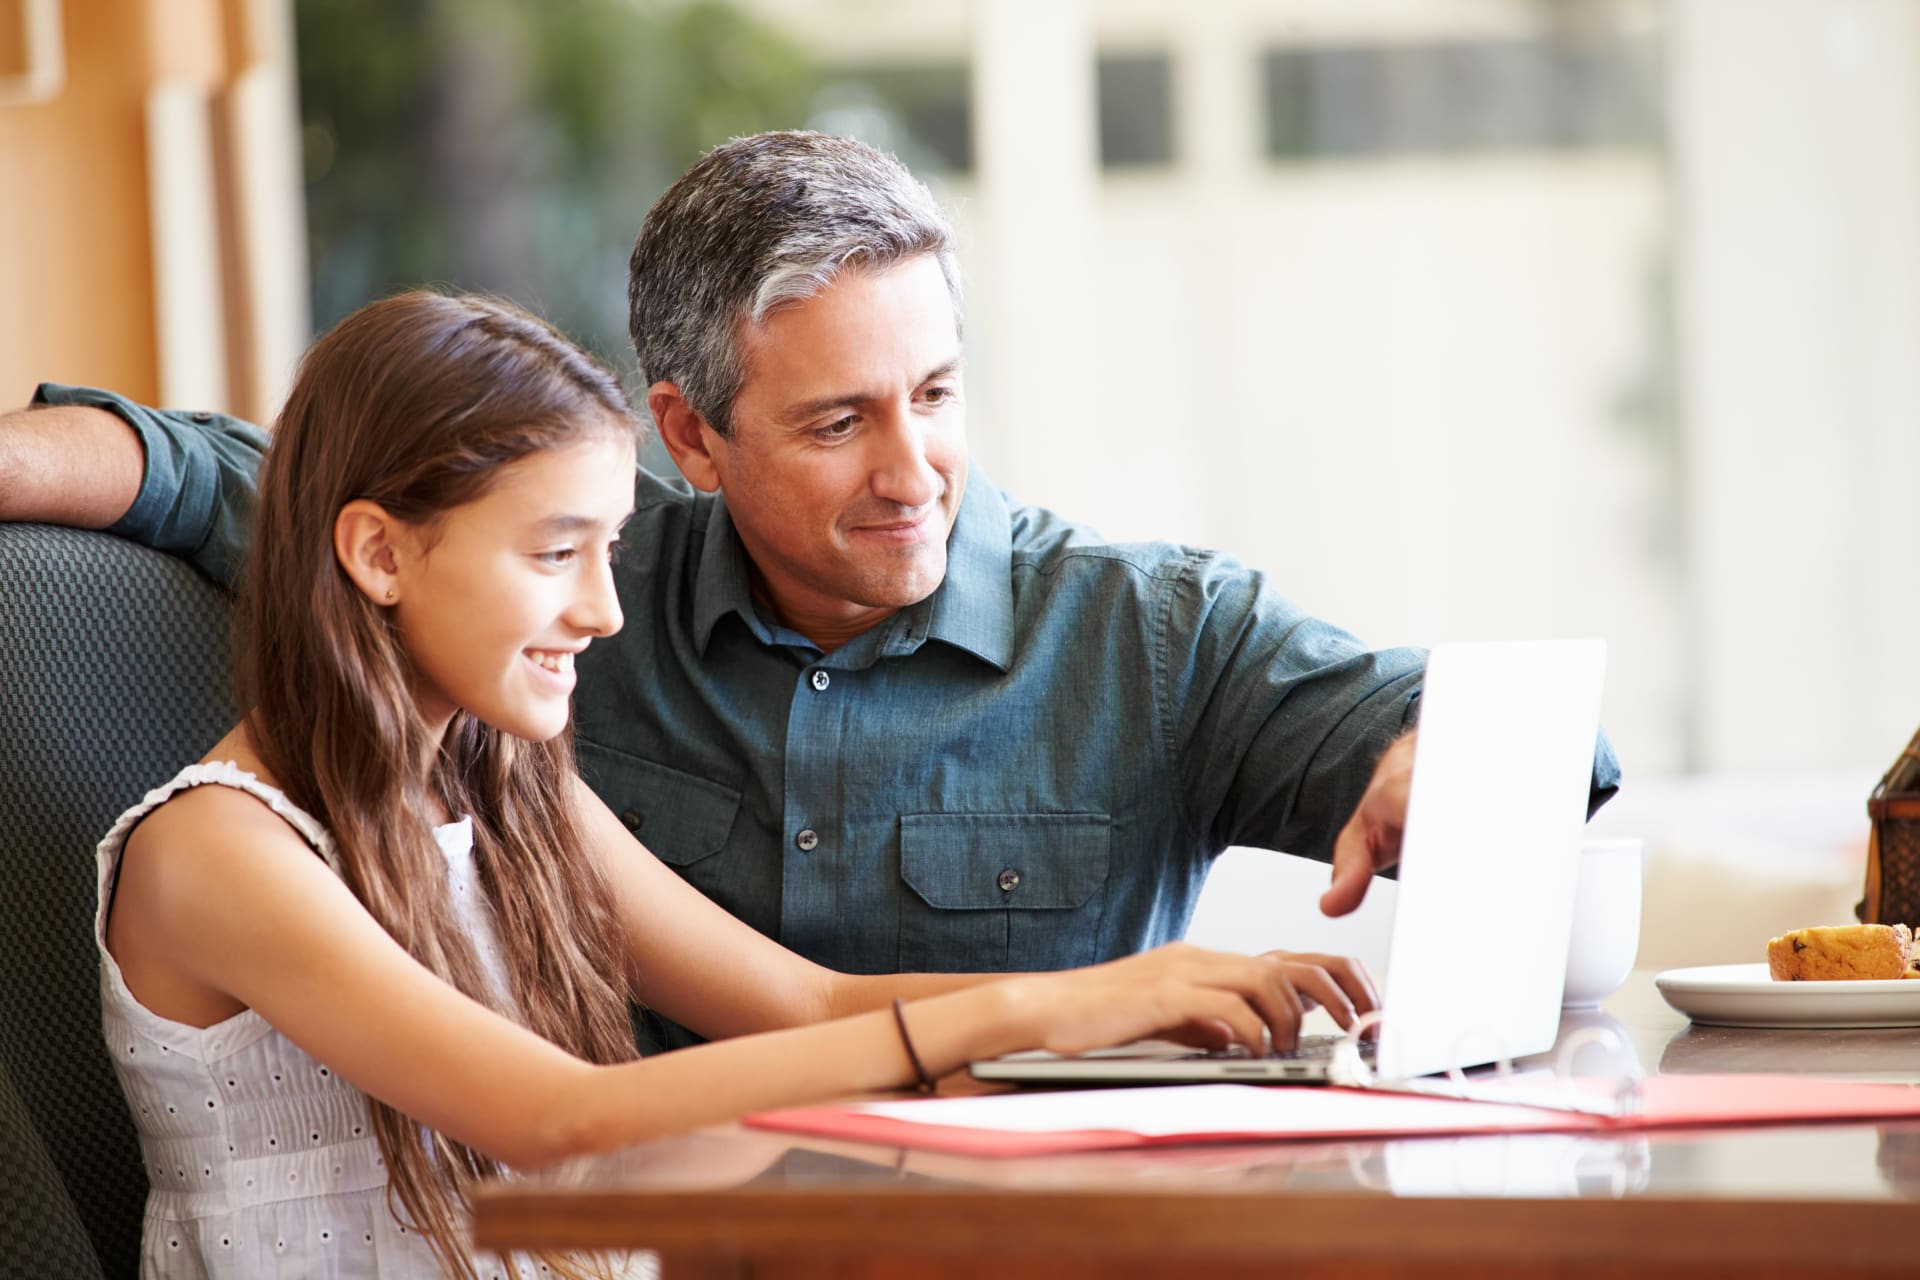 Daughter and father looking at a laptop screen